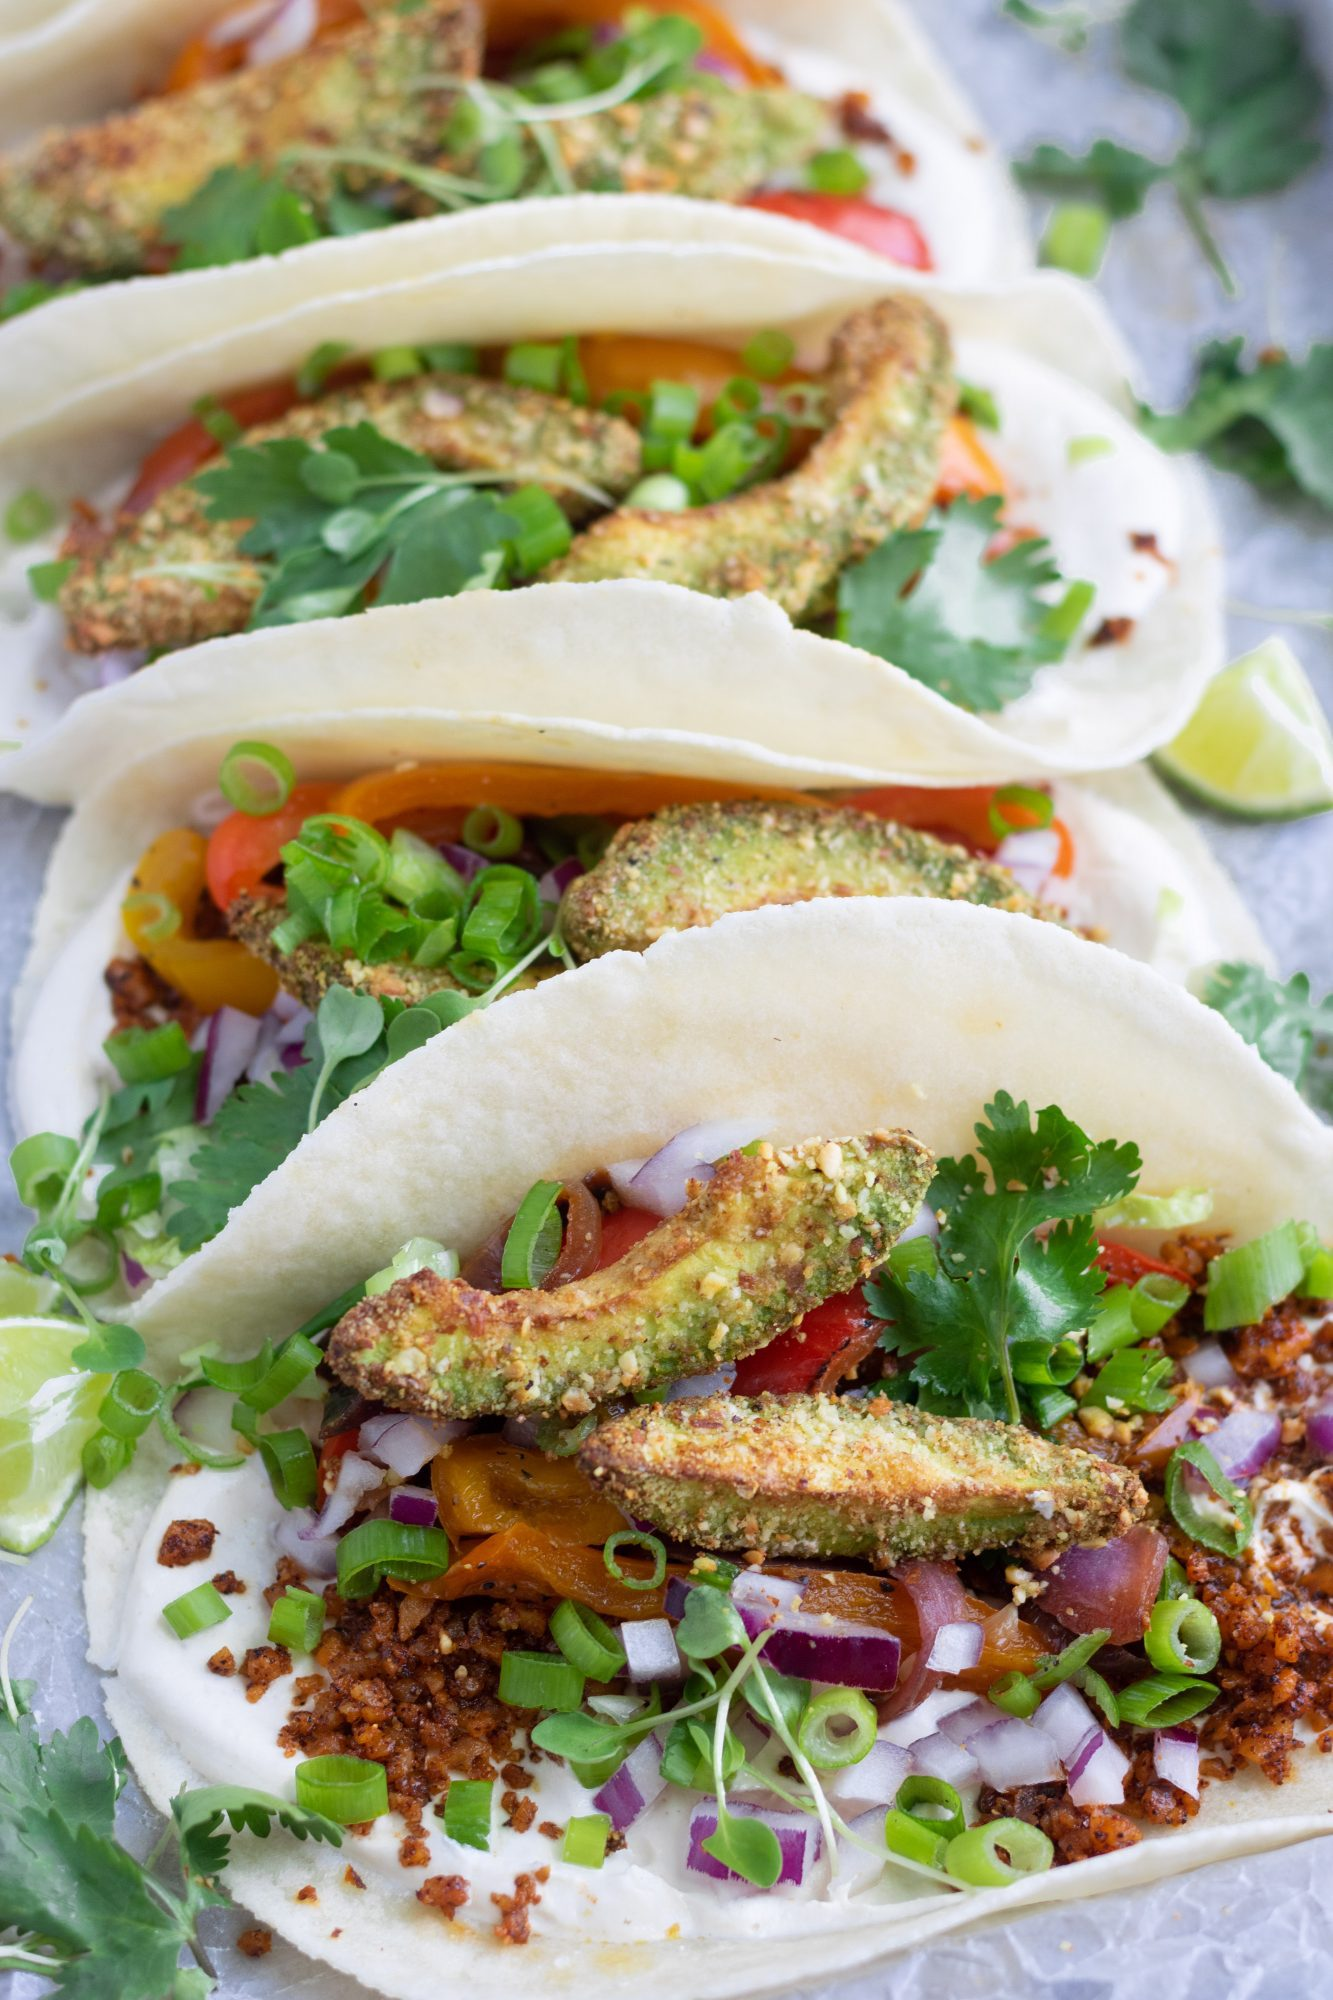 Paleo Vegan Crispy Air Fryer Avocado Tacos